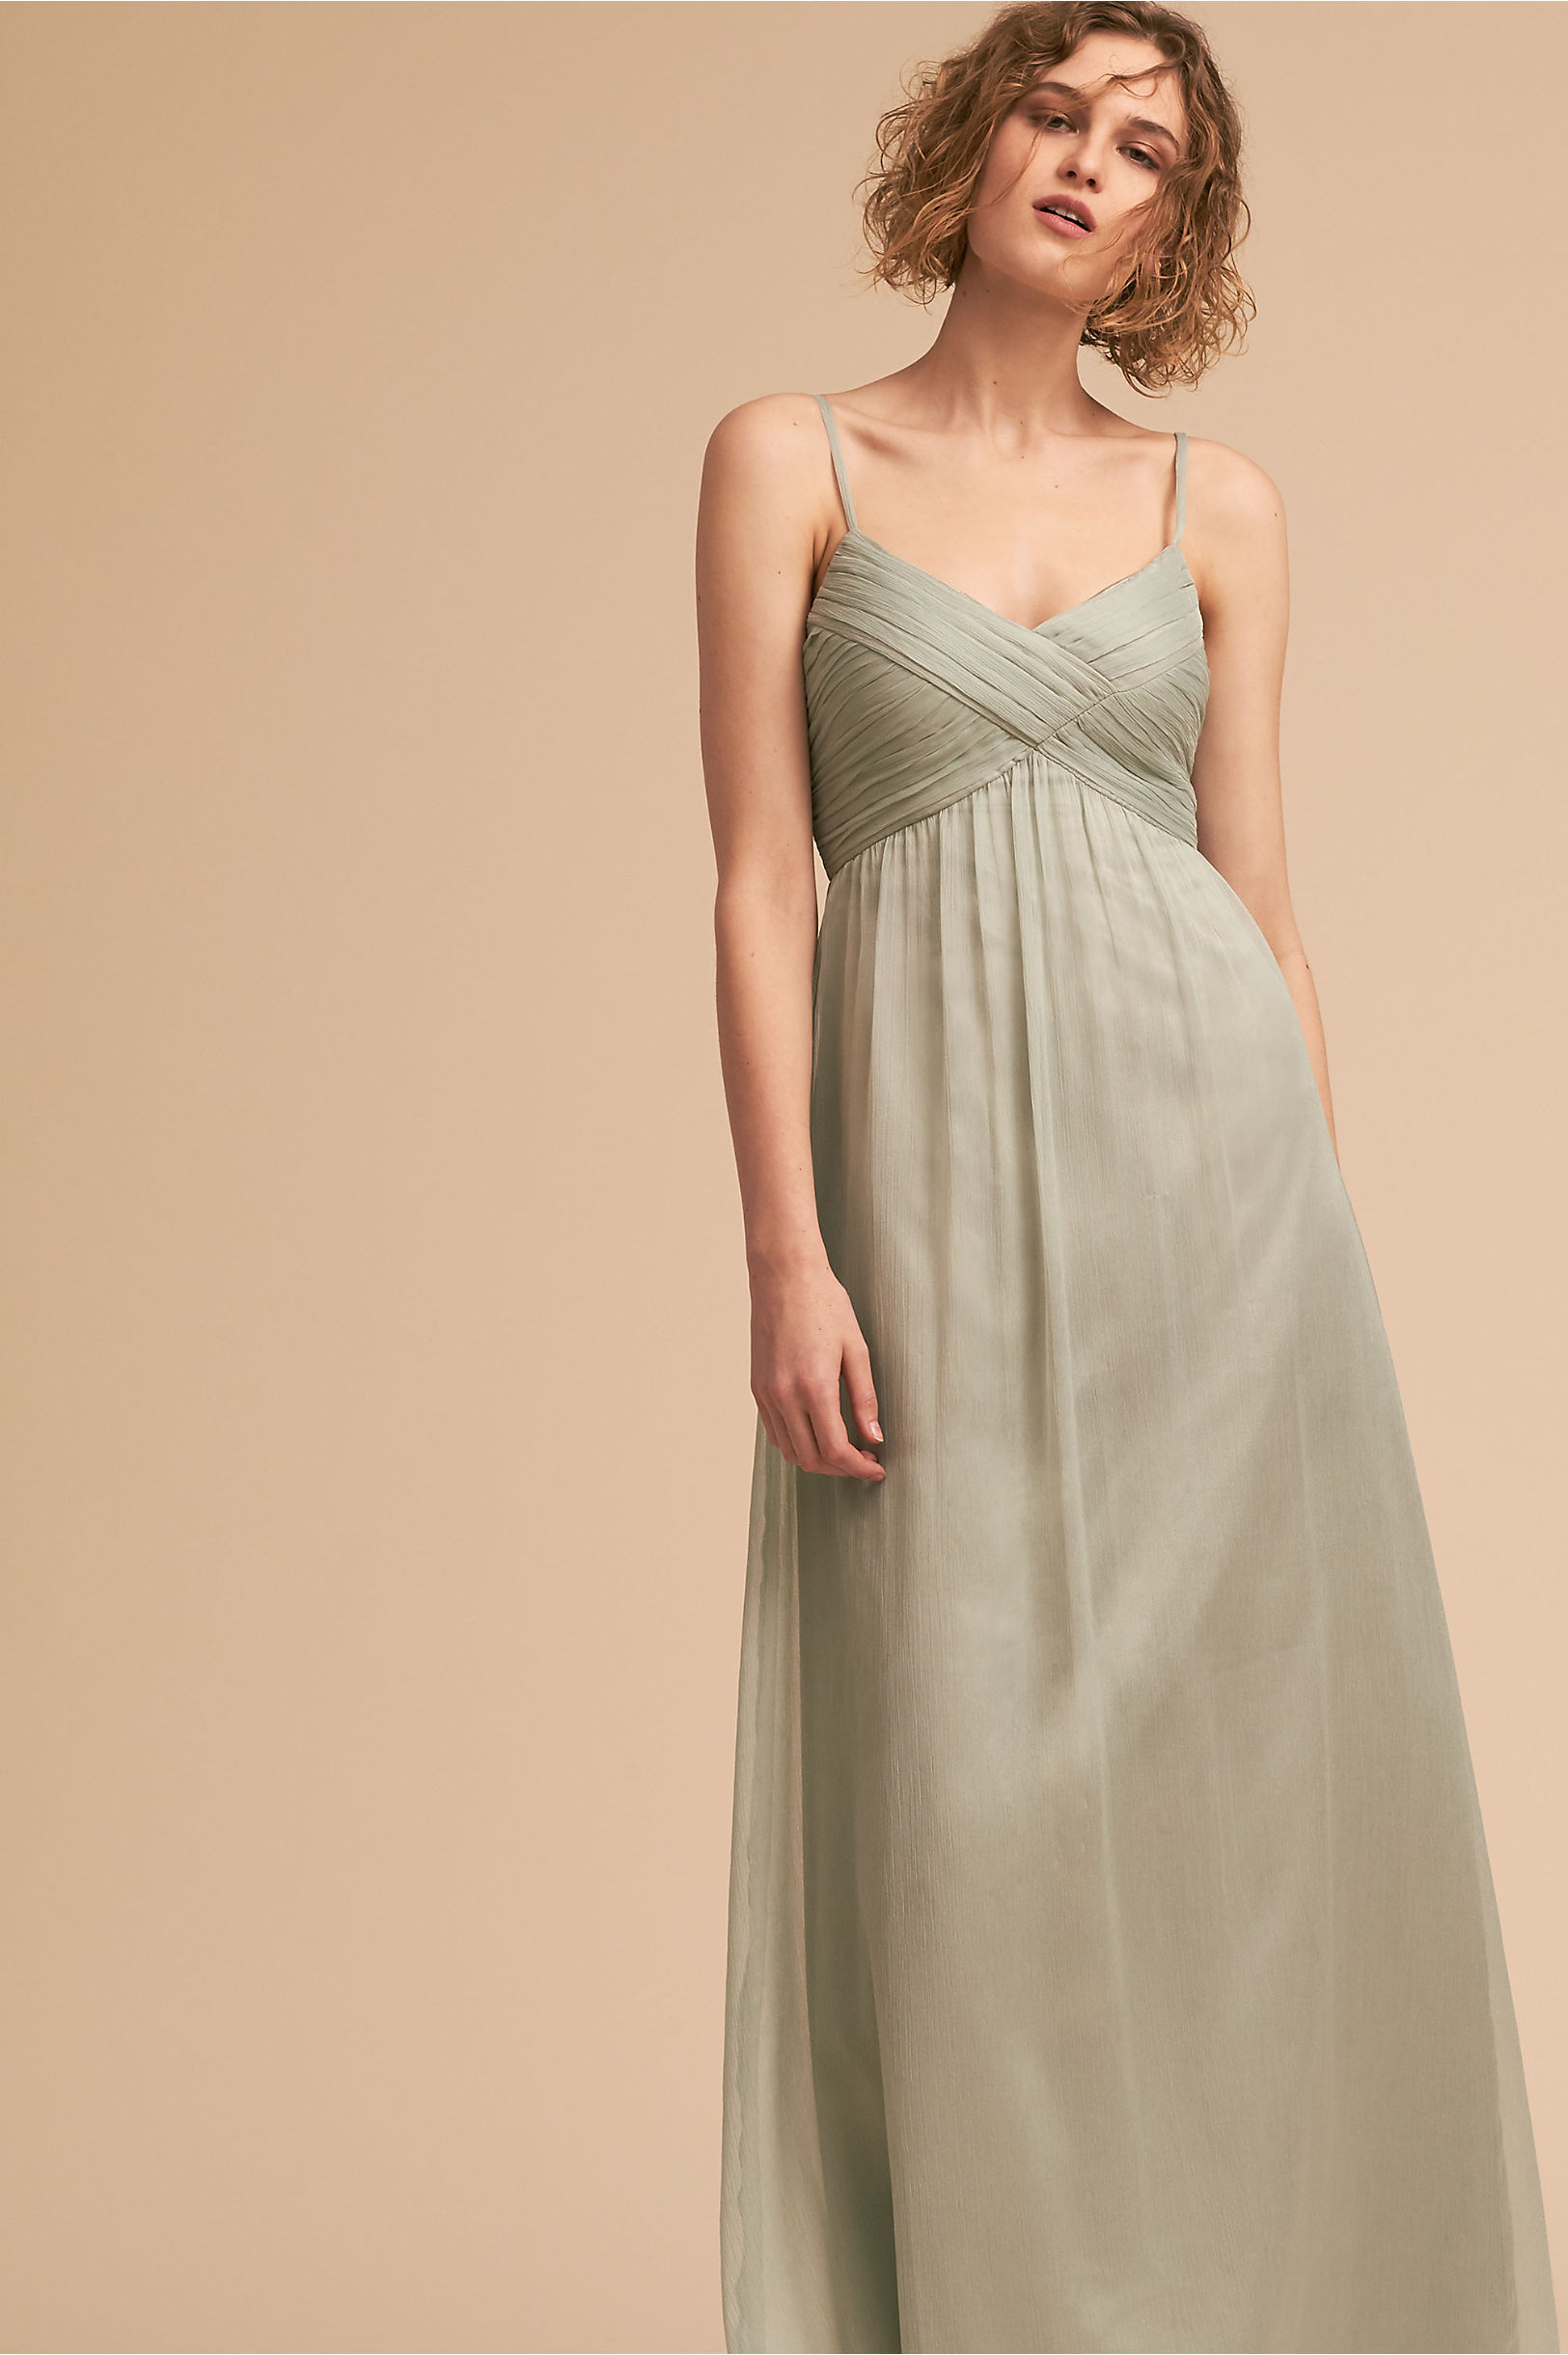 Green bridesmaid dresses bhldn brigitte dress ombrellifo Choice Image